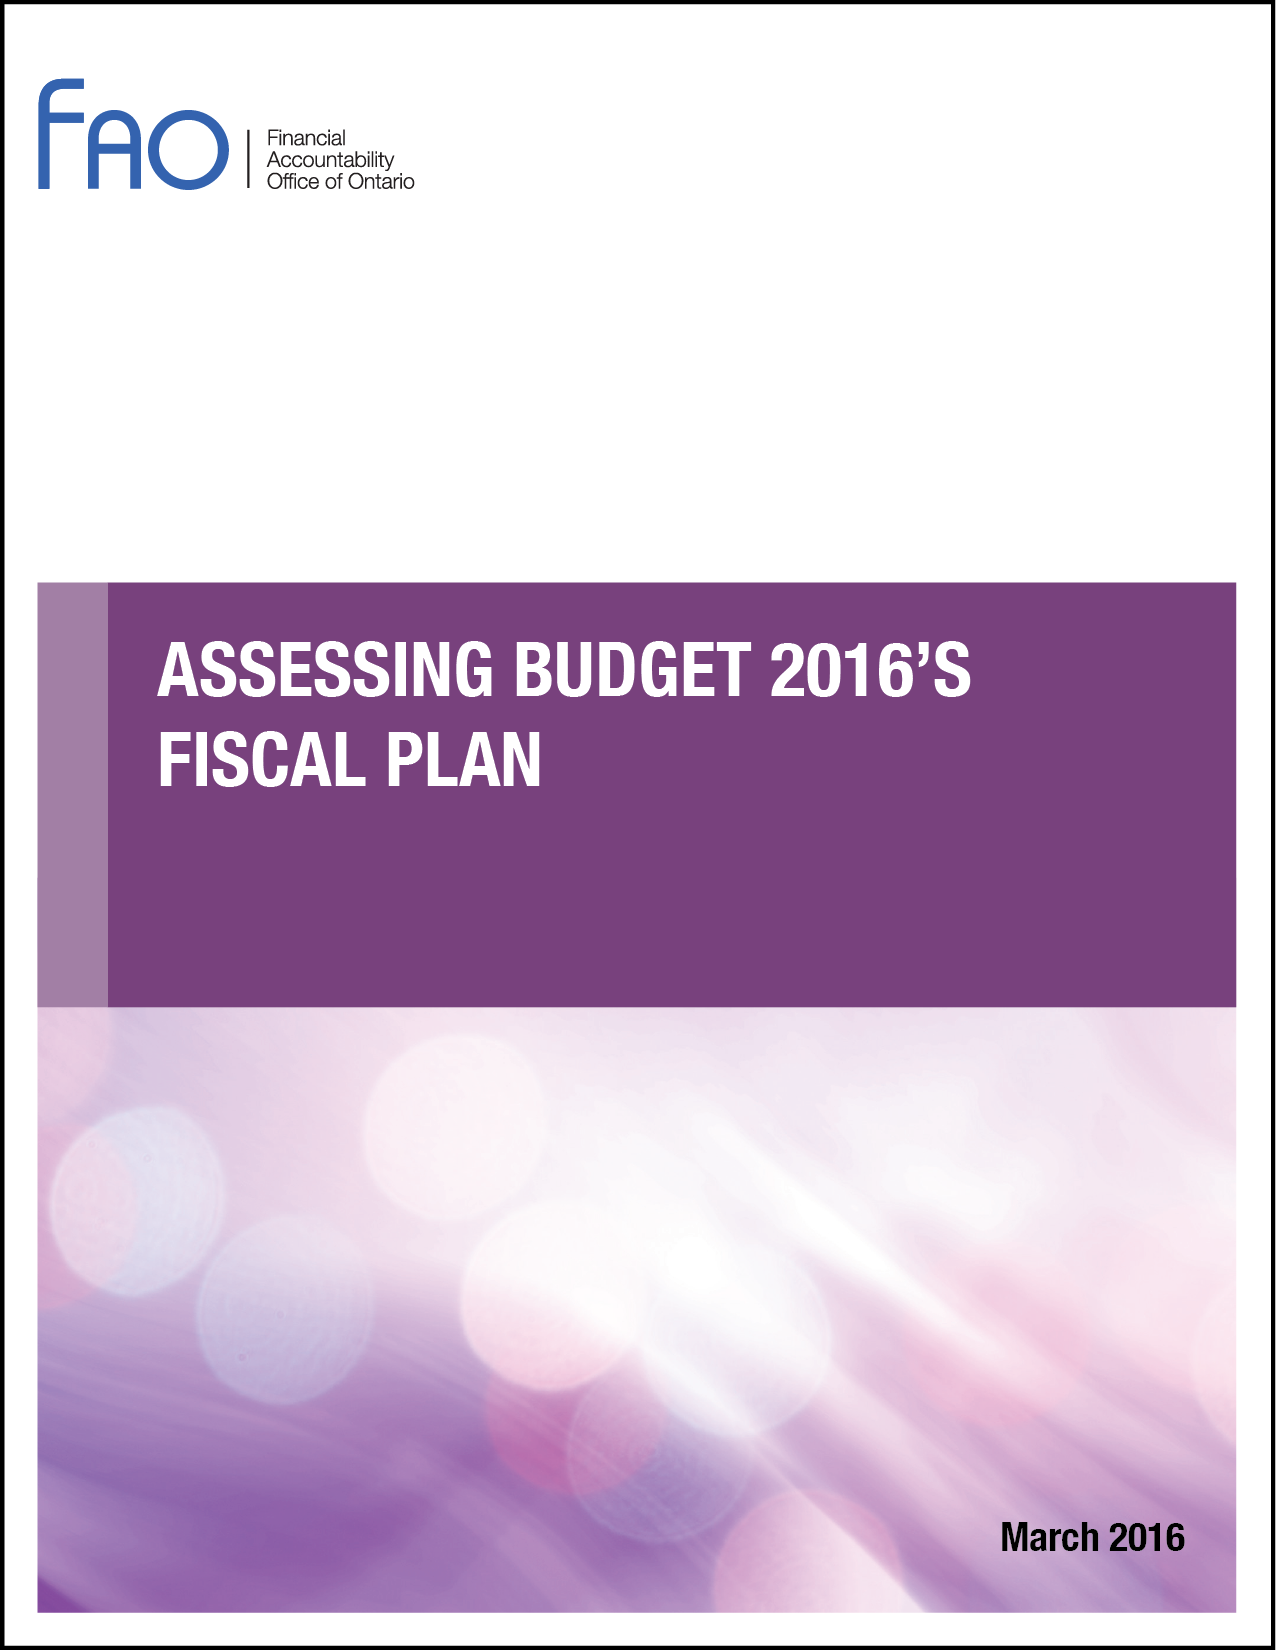 Assessing Budget 2016's Fiscal Plan